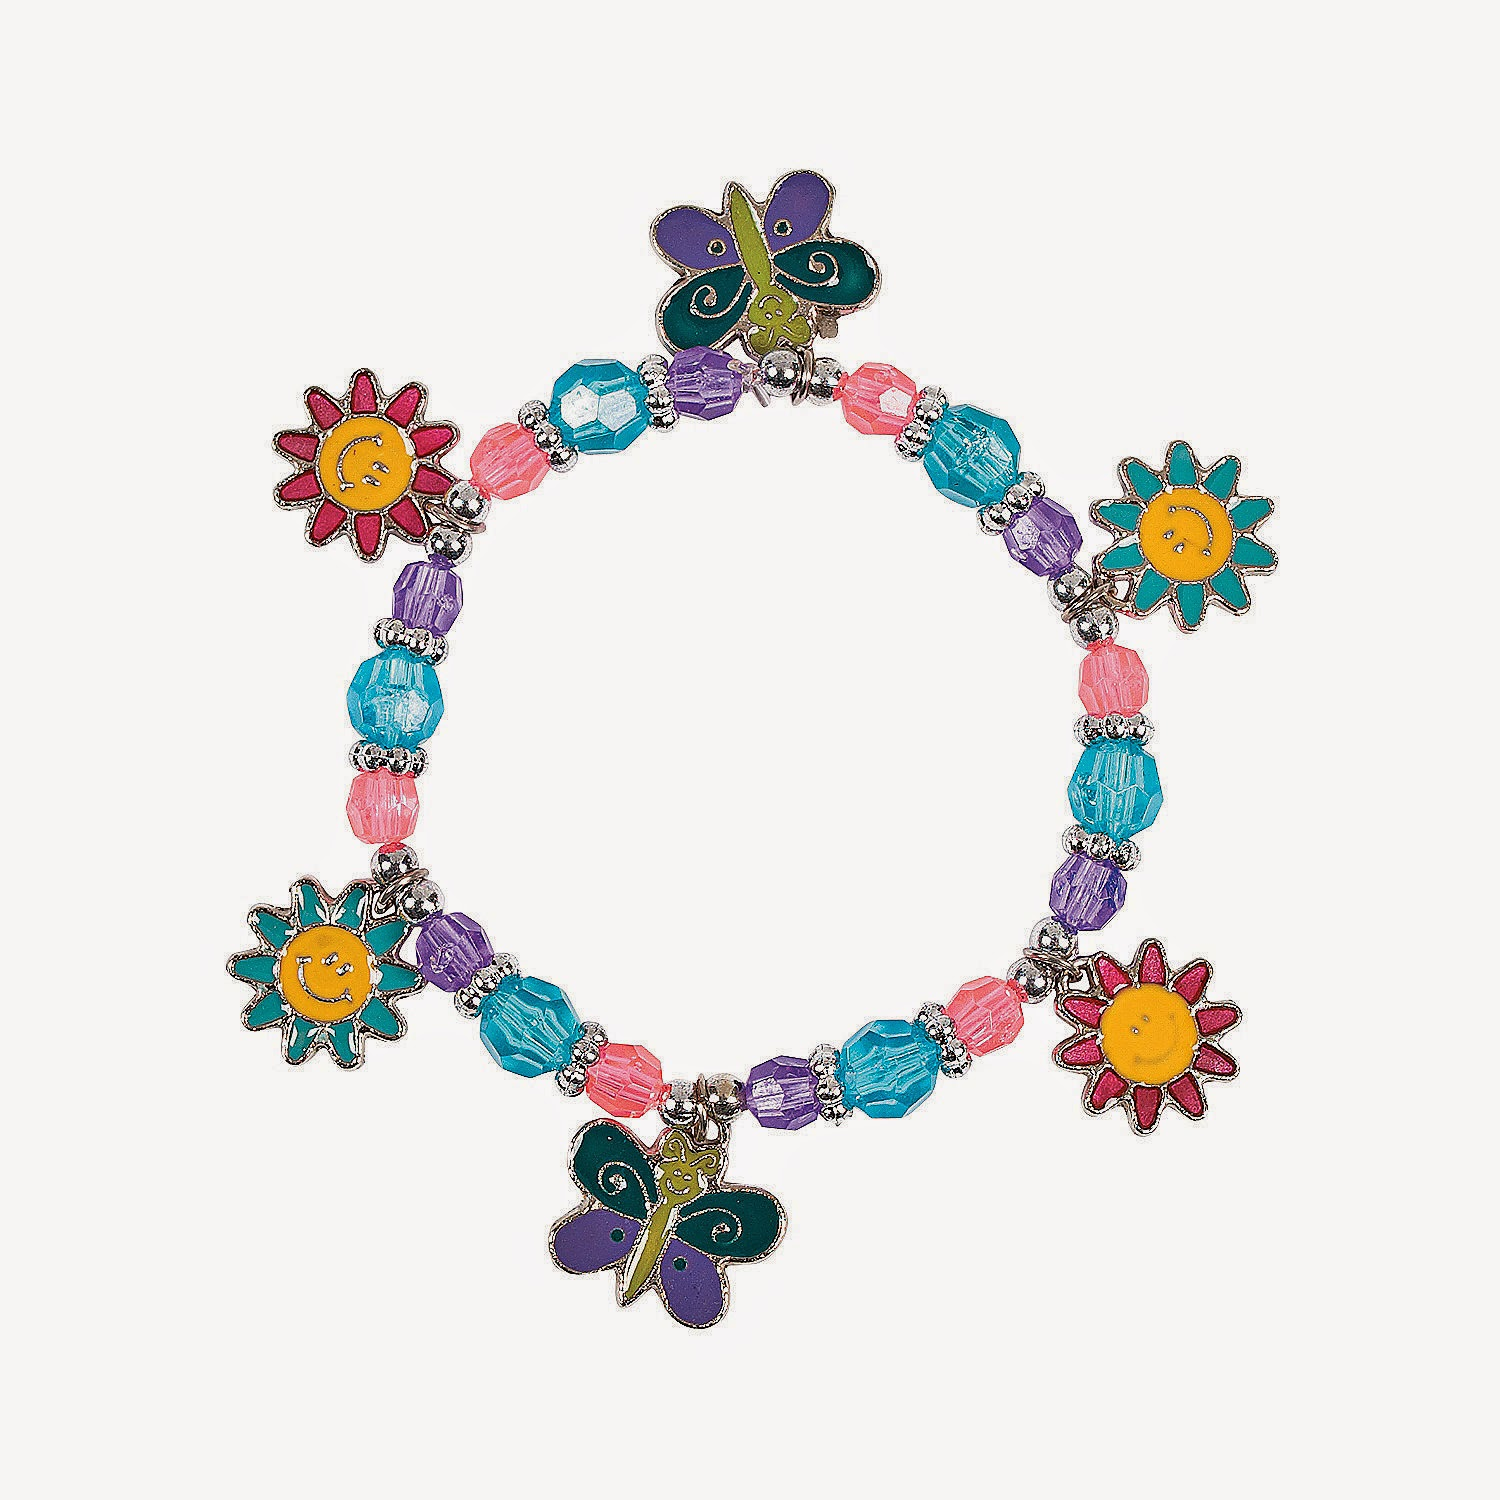 Daisy Girl Scout craft kit